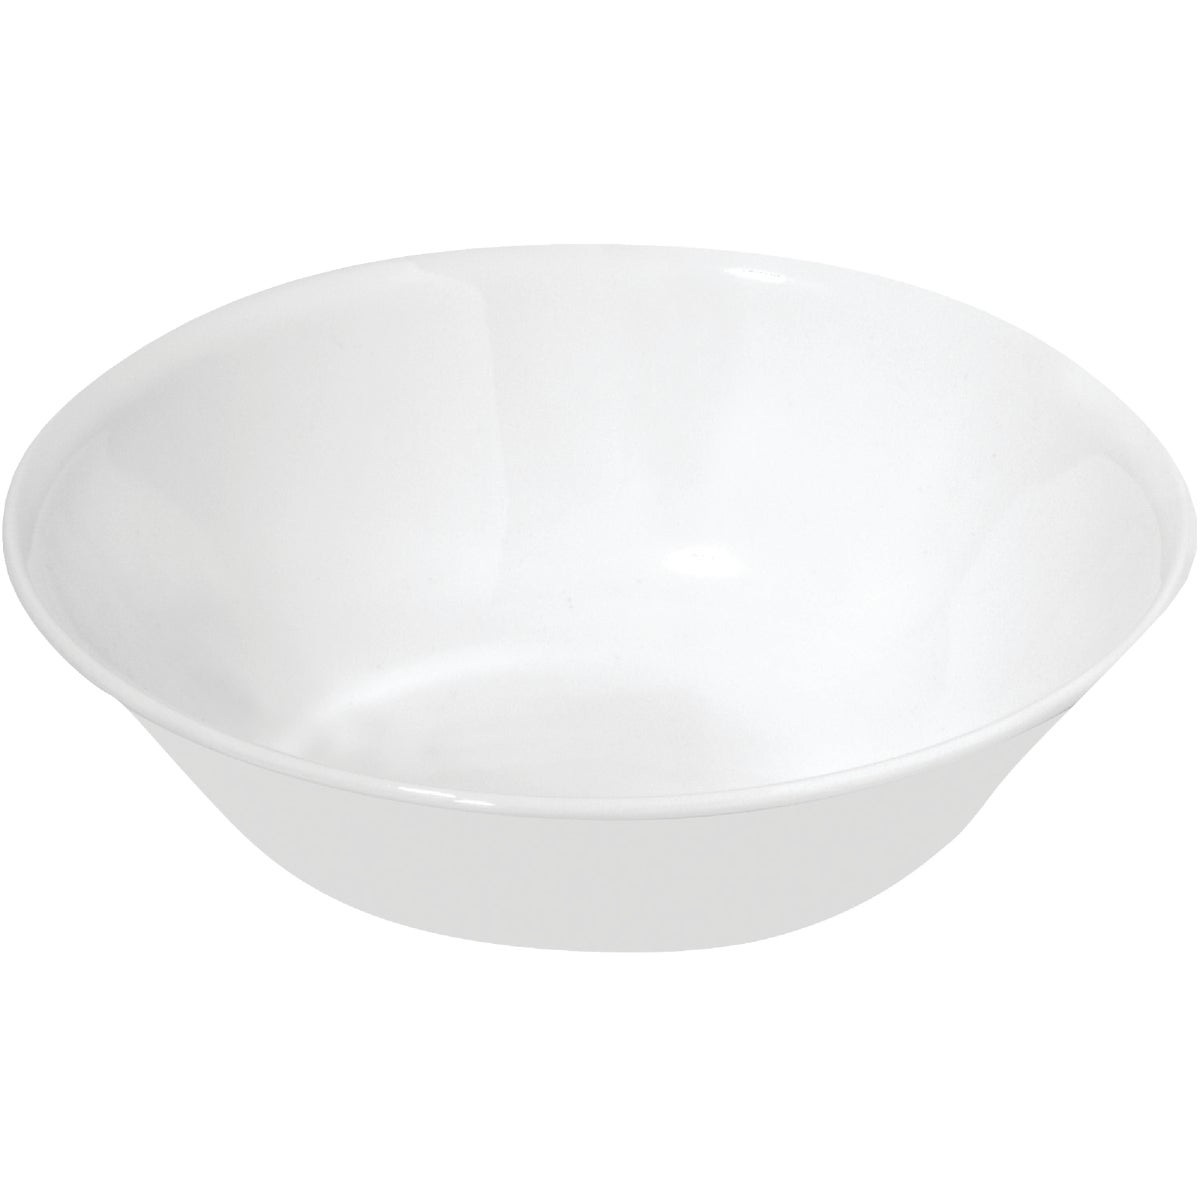 1QT WHITE SERVING BOWL - 6003911 by World Kitchen